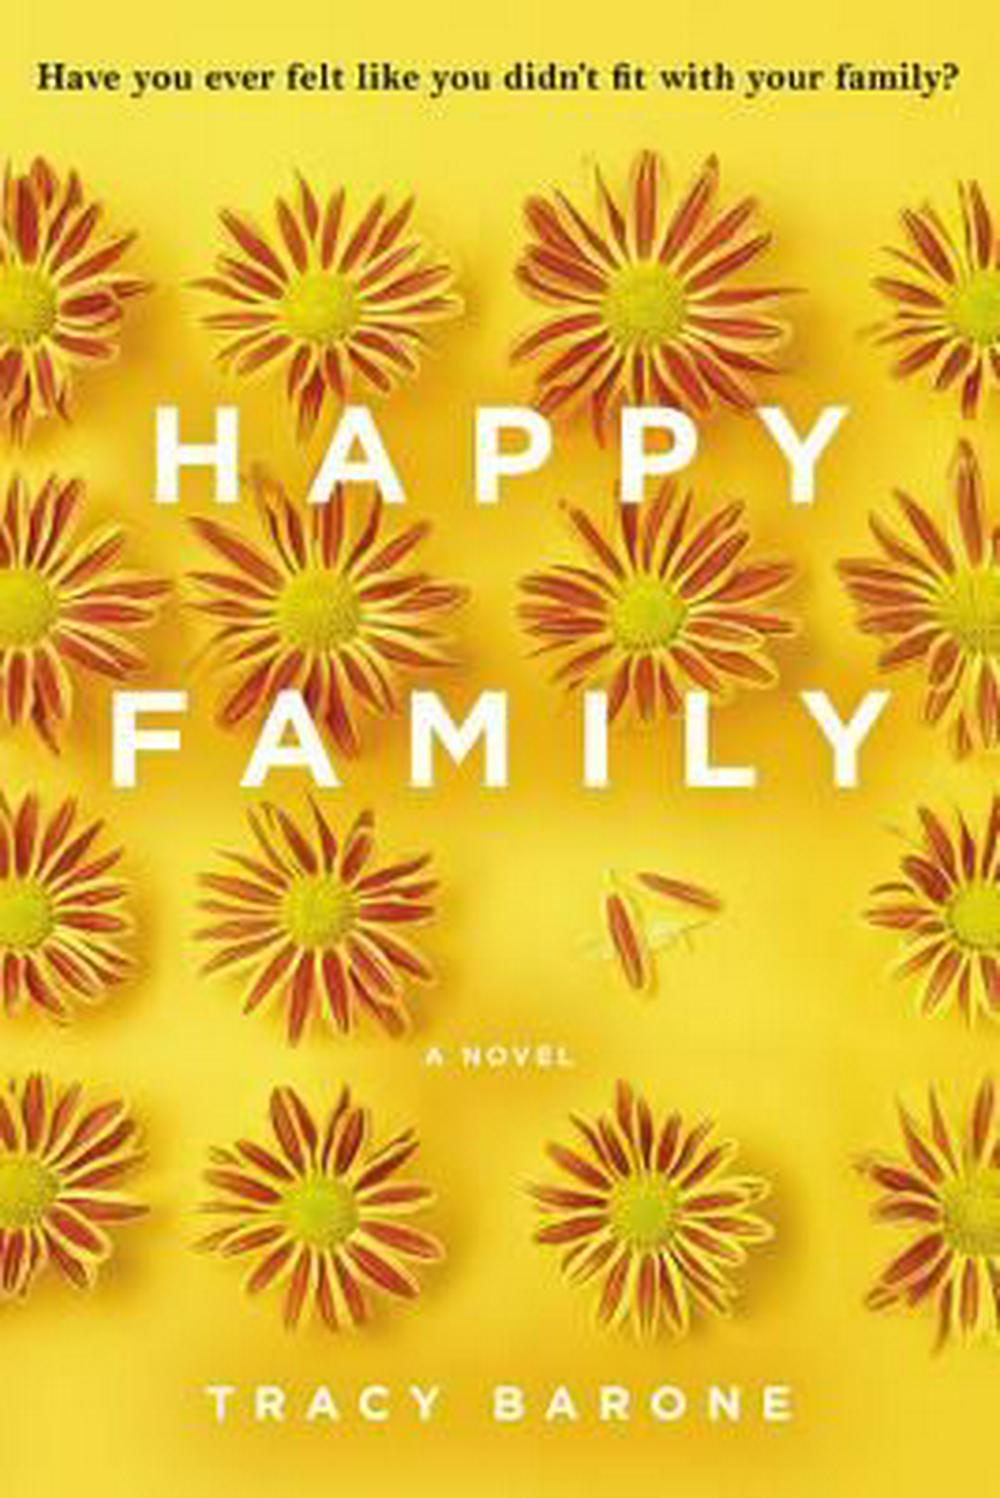 Happy Family by Tracy Barone, ISBN: 9780316342599